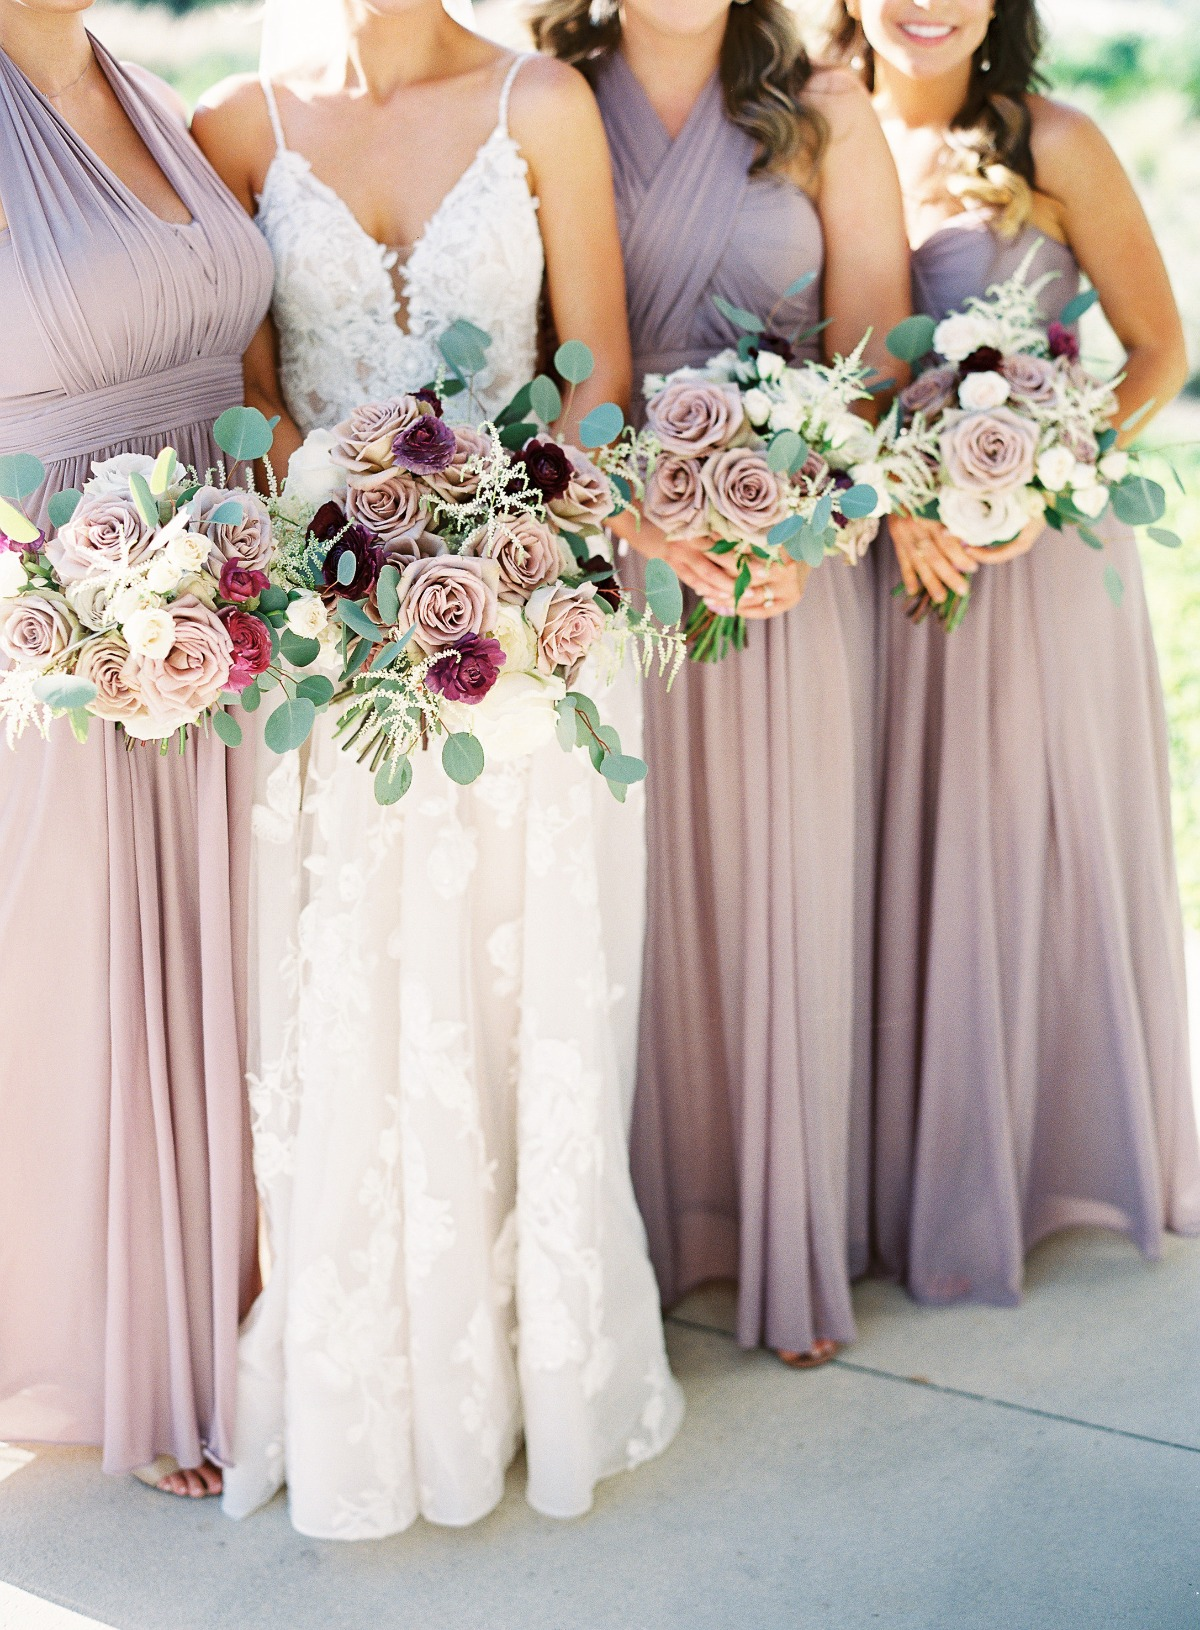 You've Never Seen A Florida Wedding Like This Before